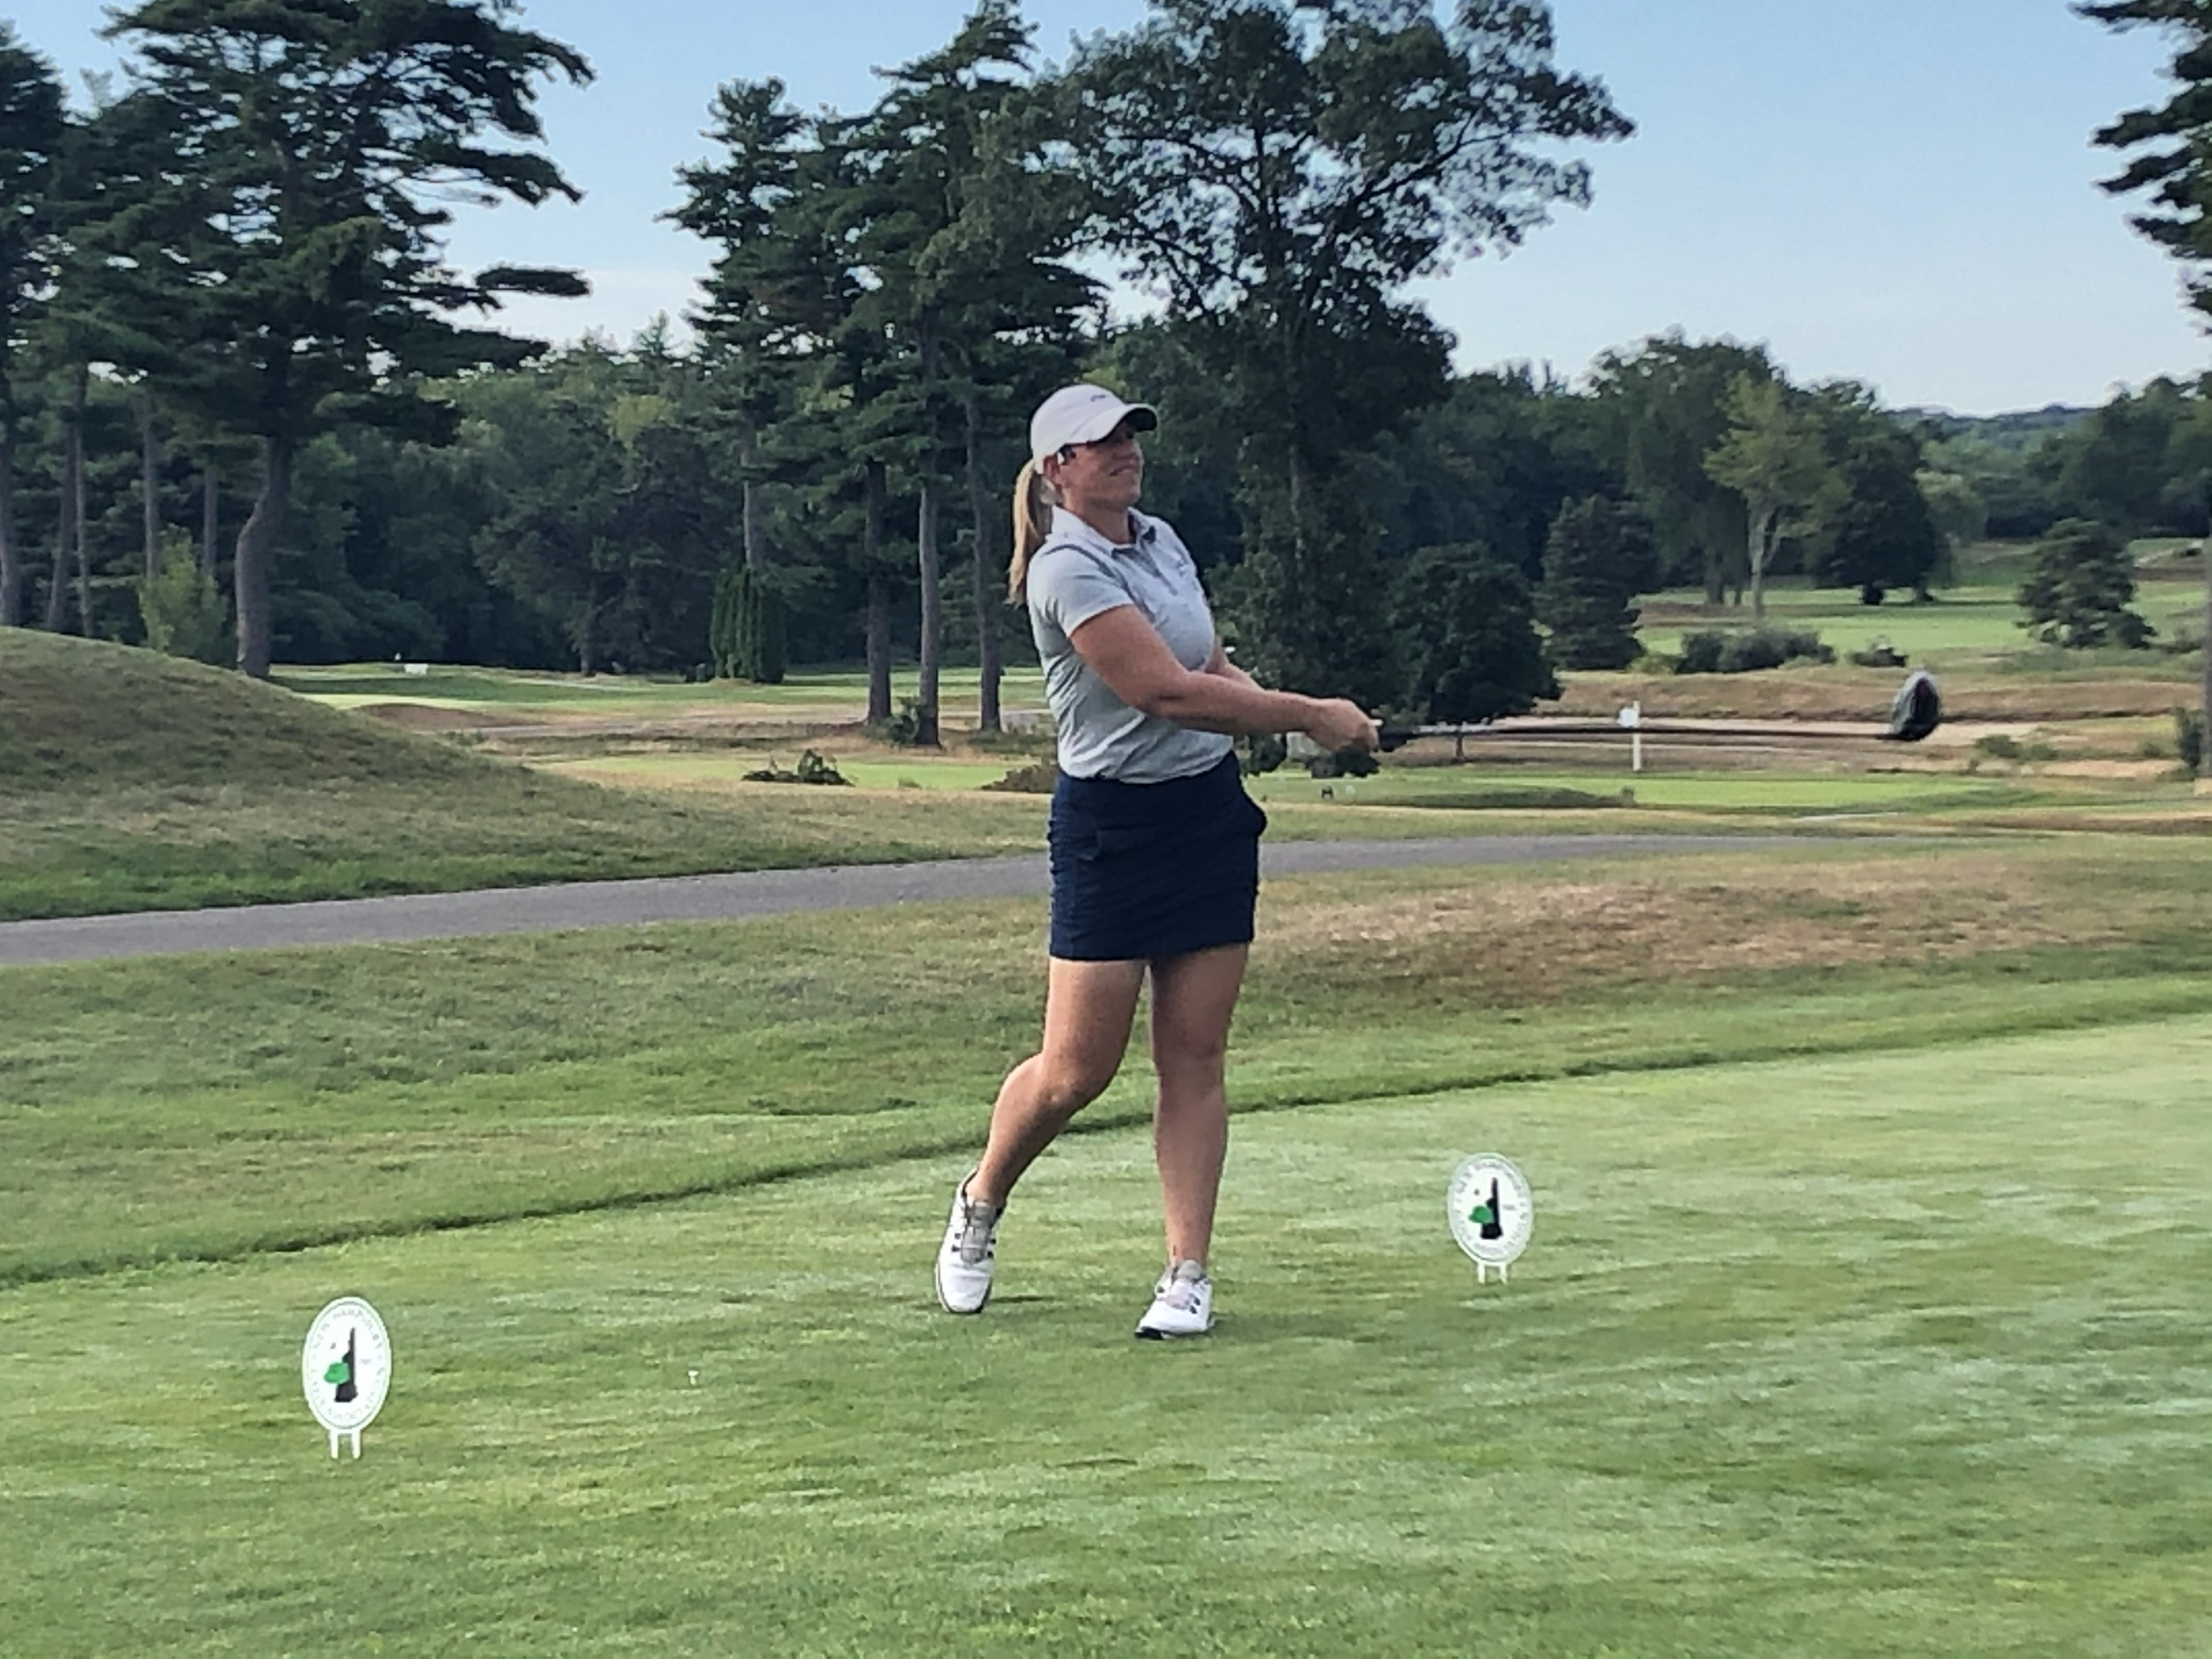 Watt Leads Women's Mid-Amateur By One With Opening Round 72